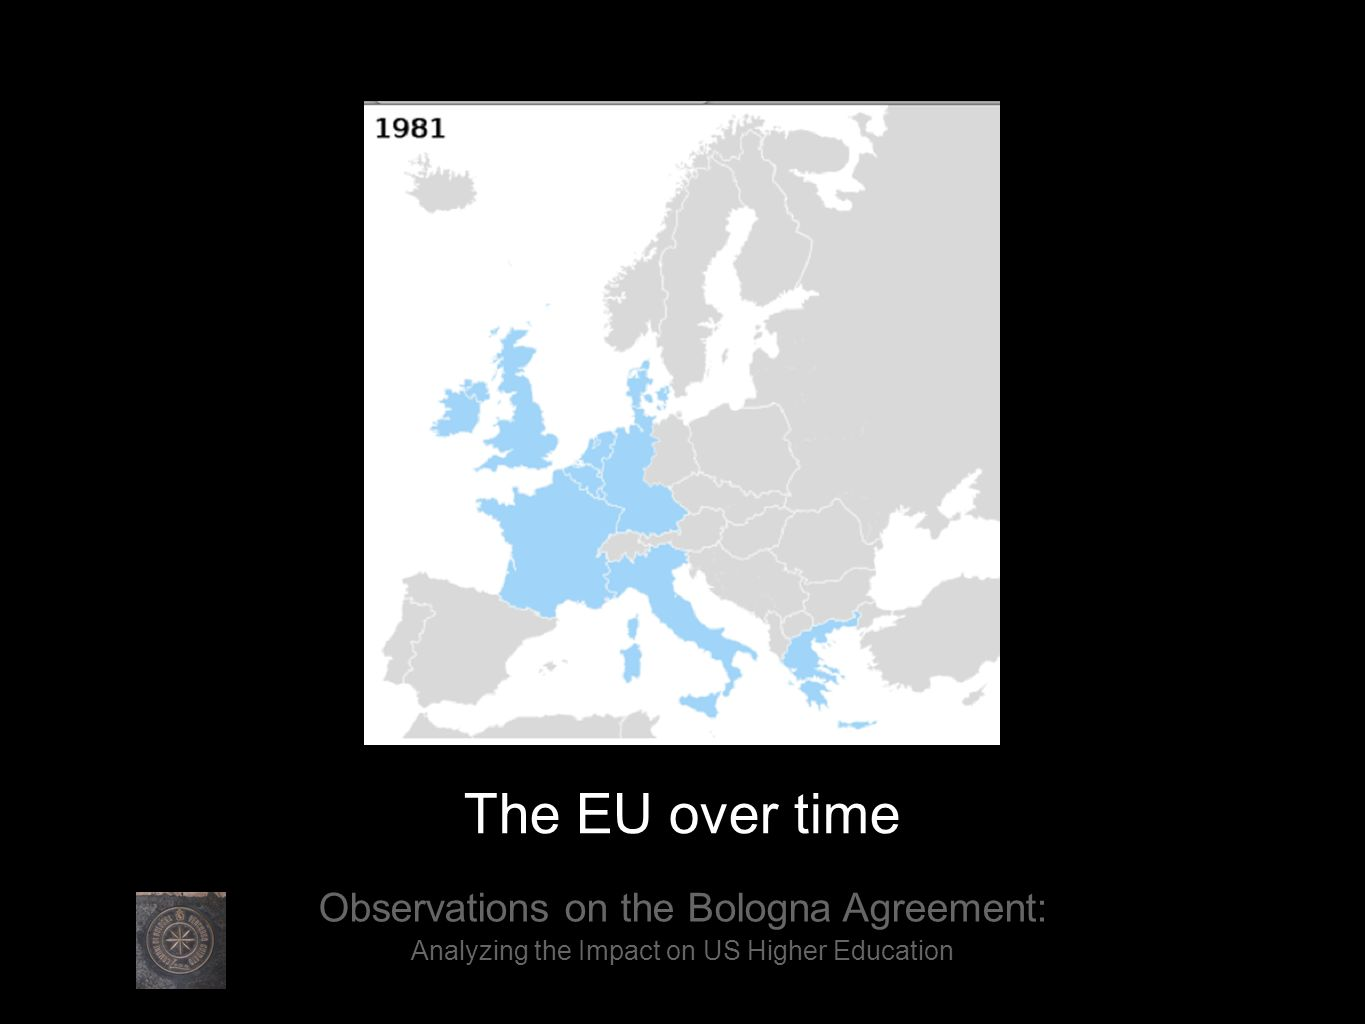 The EU over time Observations on the Bologna Agreement: Analyzing the Impact on US Higher Education